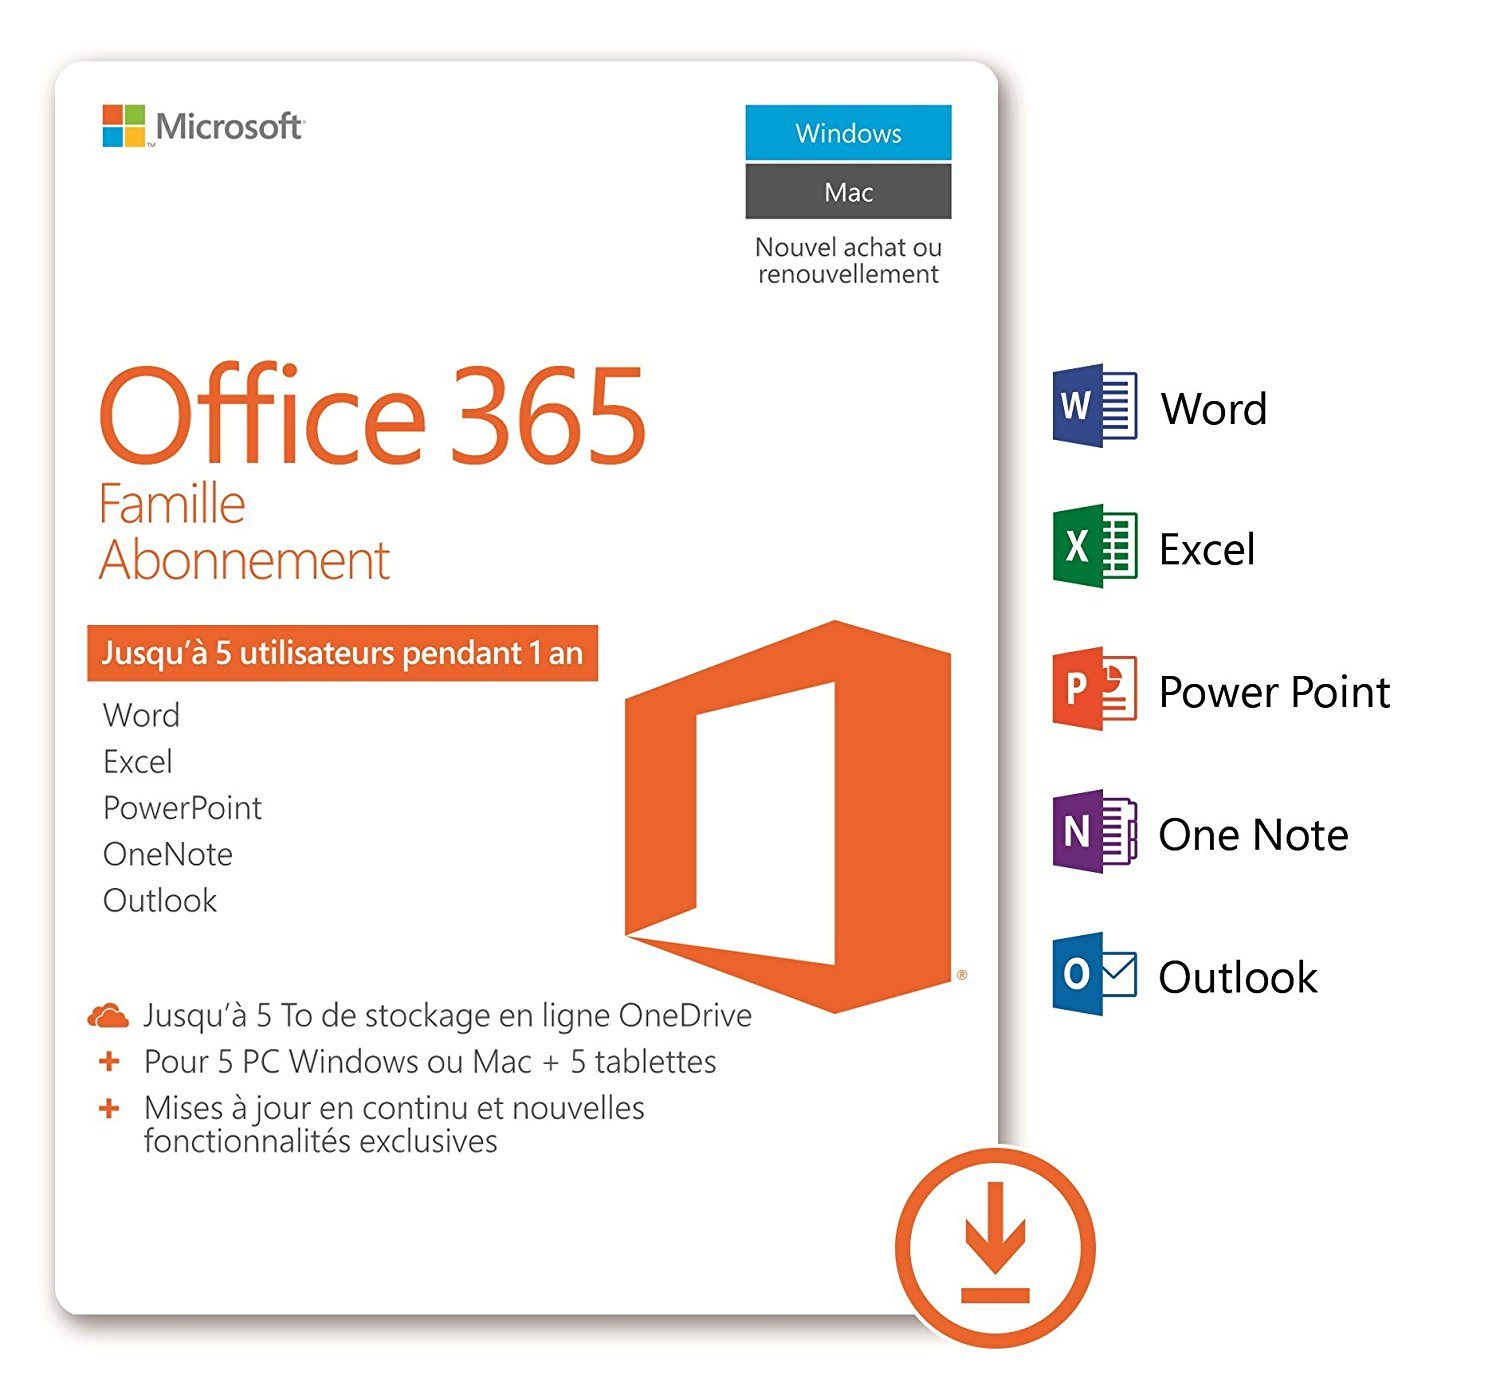 Microsoft Office Pour Tablette Office 365 Famille 5 Pc Windows Mac 43 5 Tablettes